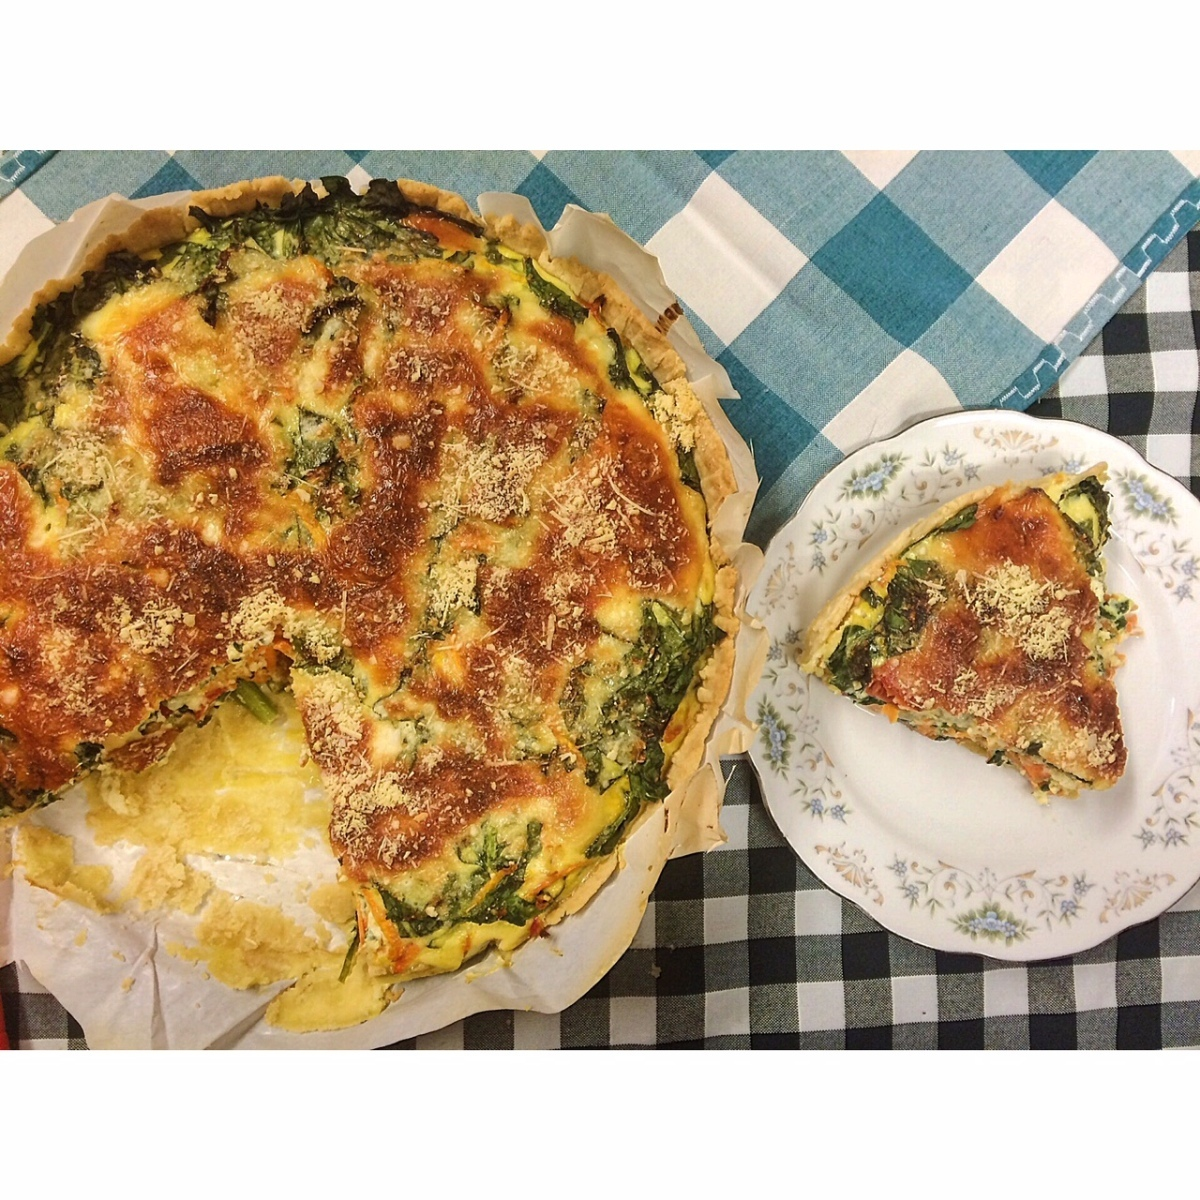 QUICHE DE VERDURAS Y YOGURT